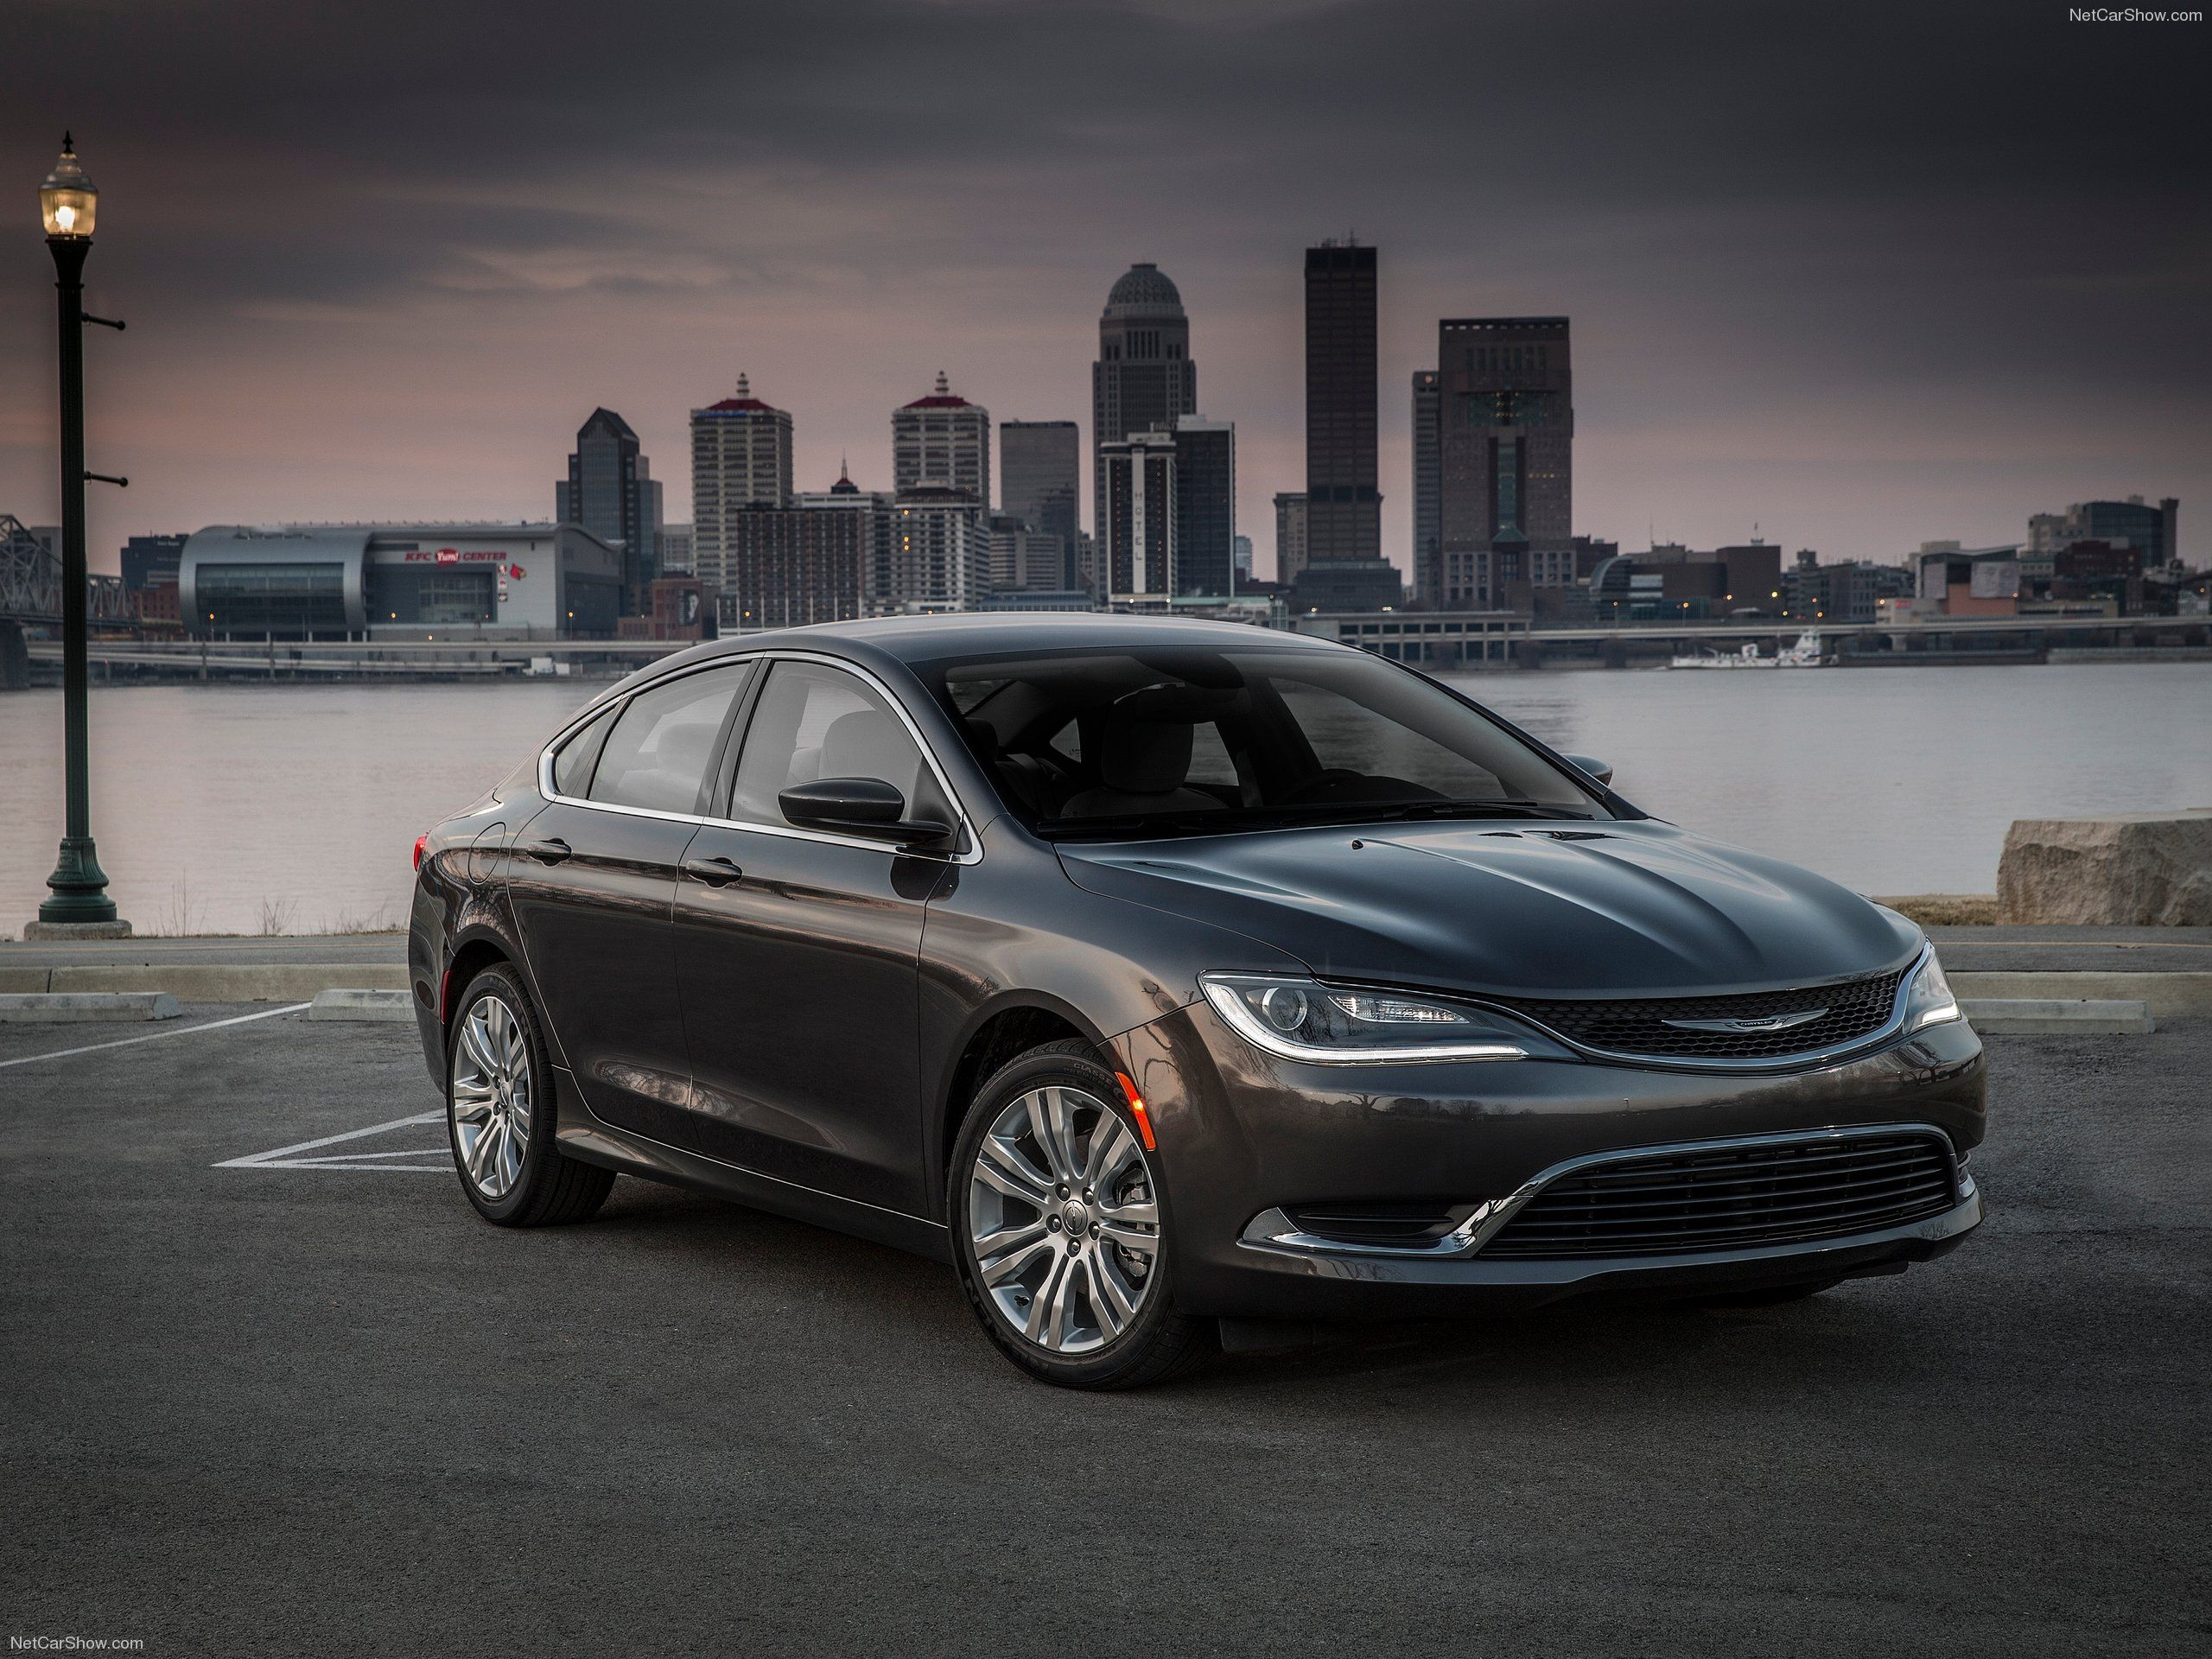 2560x1920 - Chrysler 200 Wallpapers 33